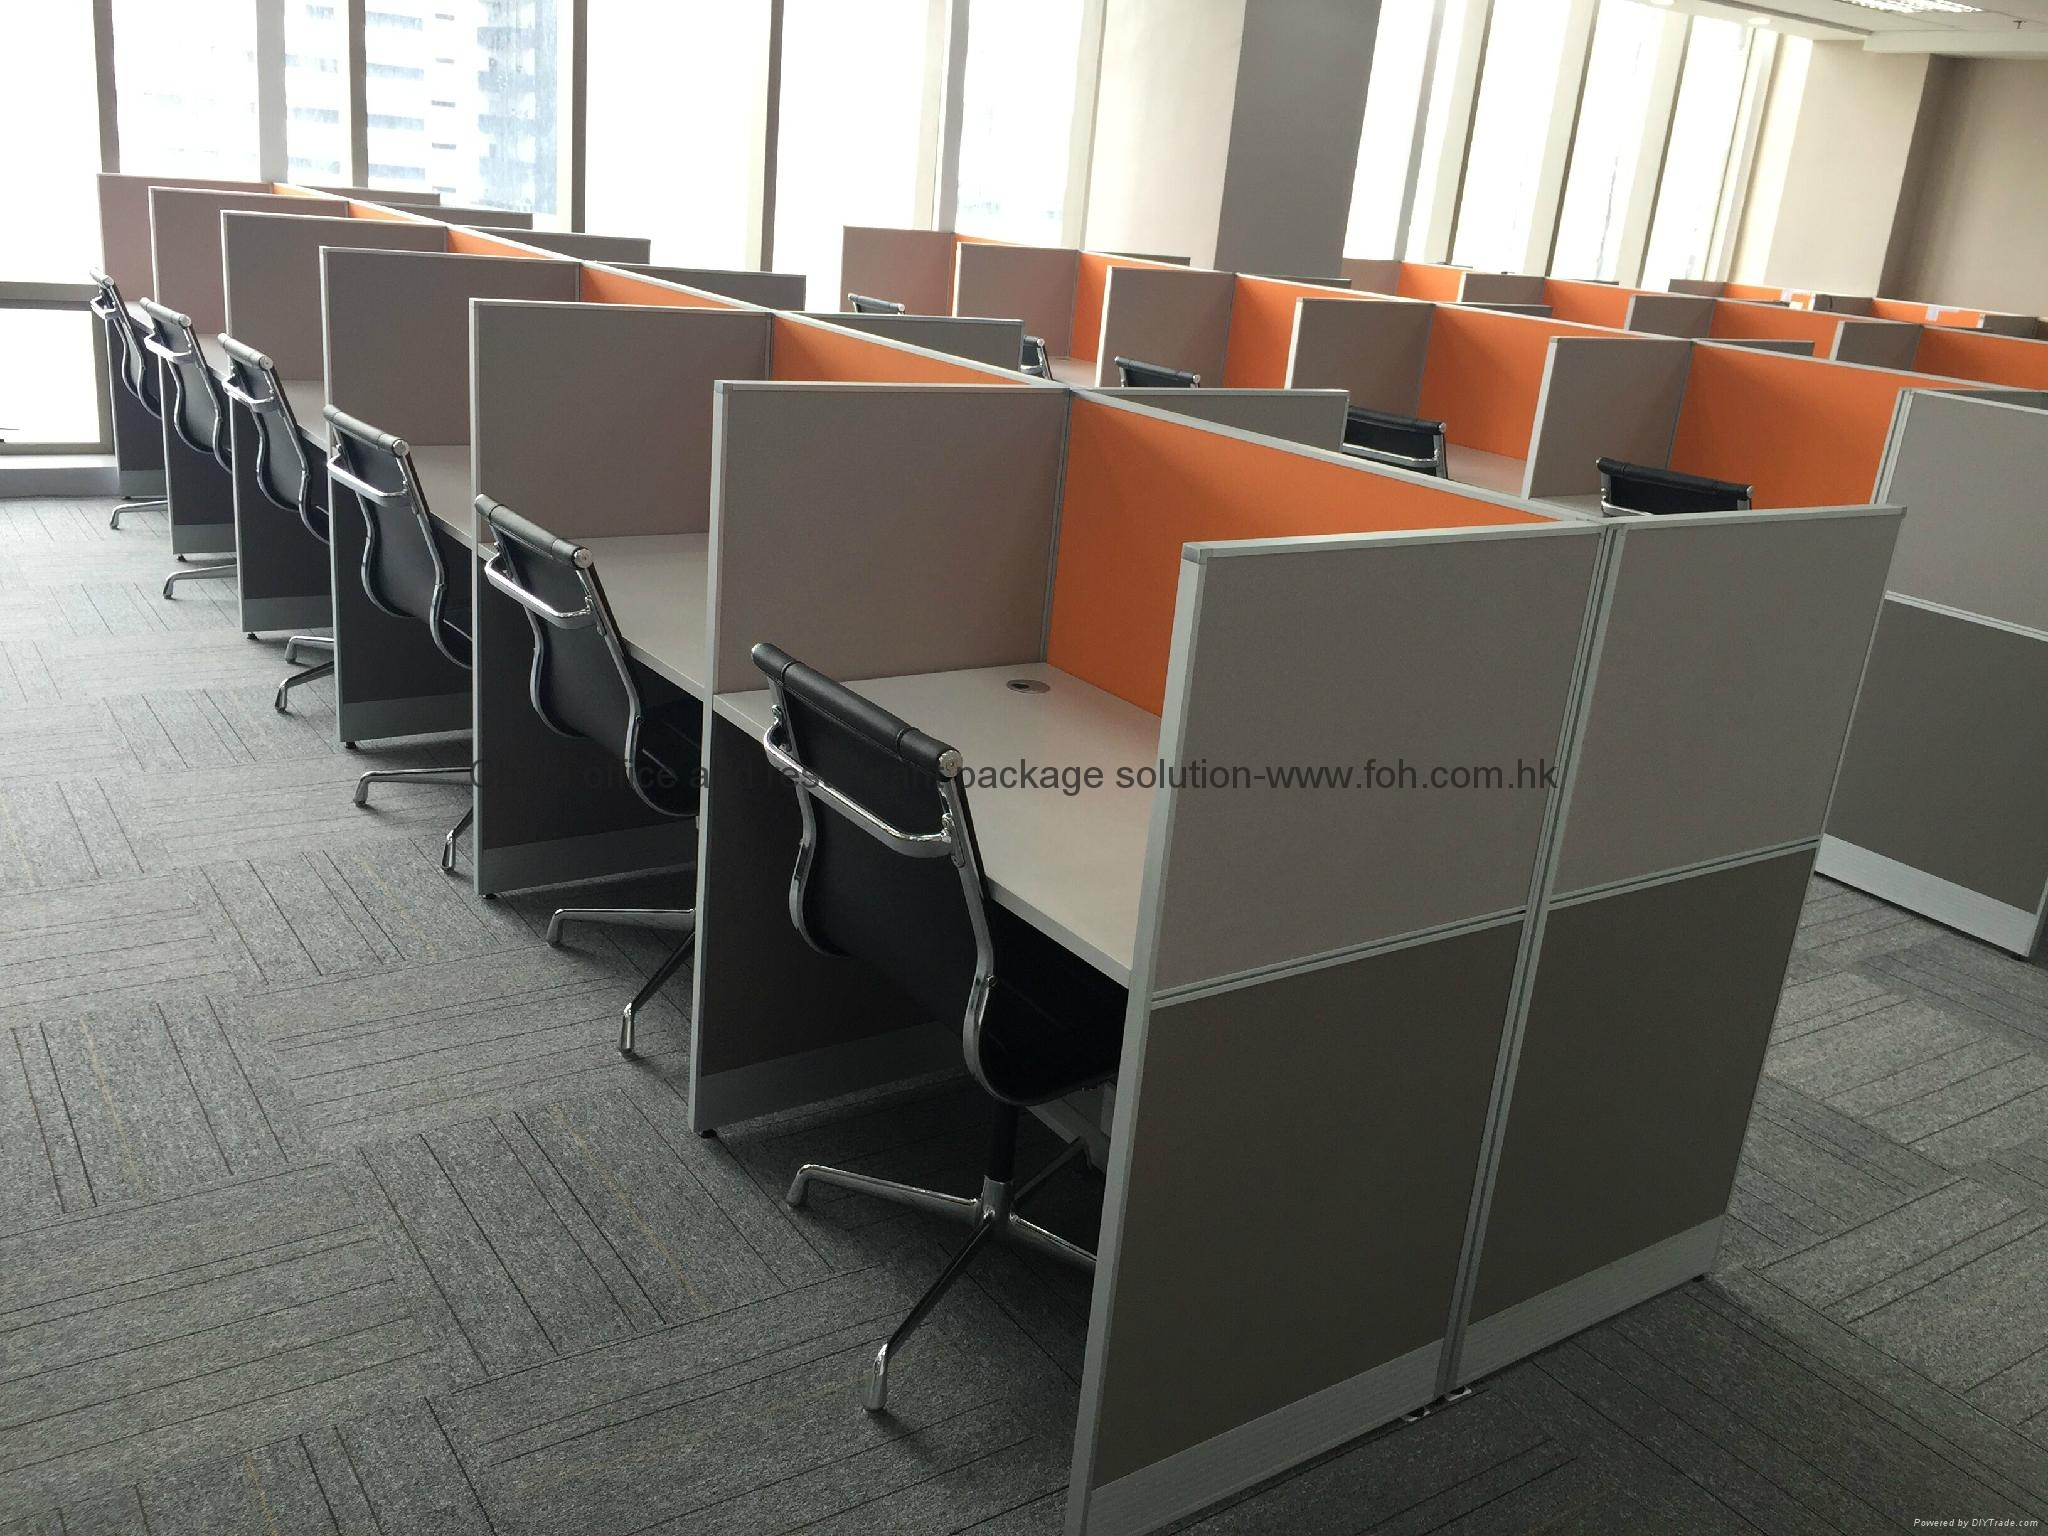 Cubicle Call Center Office Furniture Call Center Call